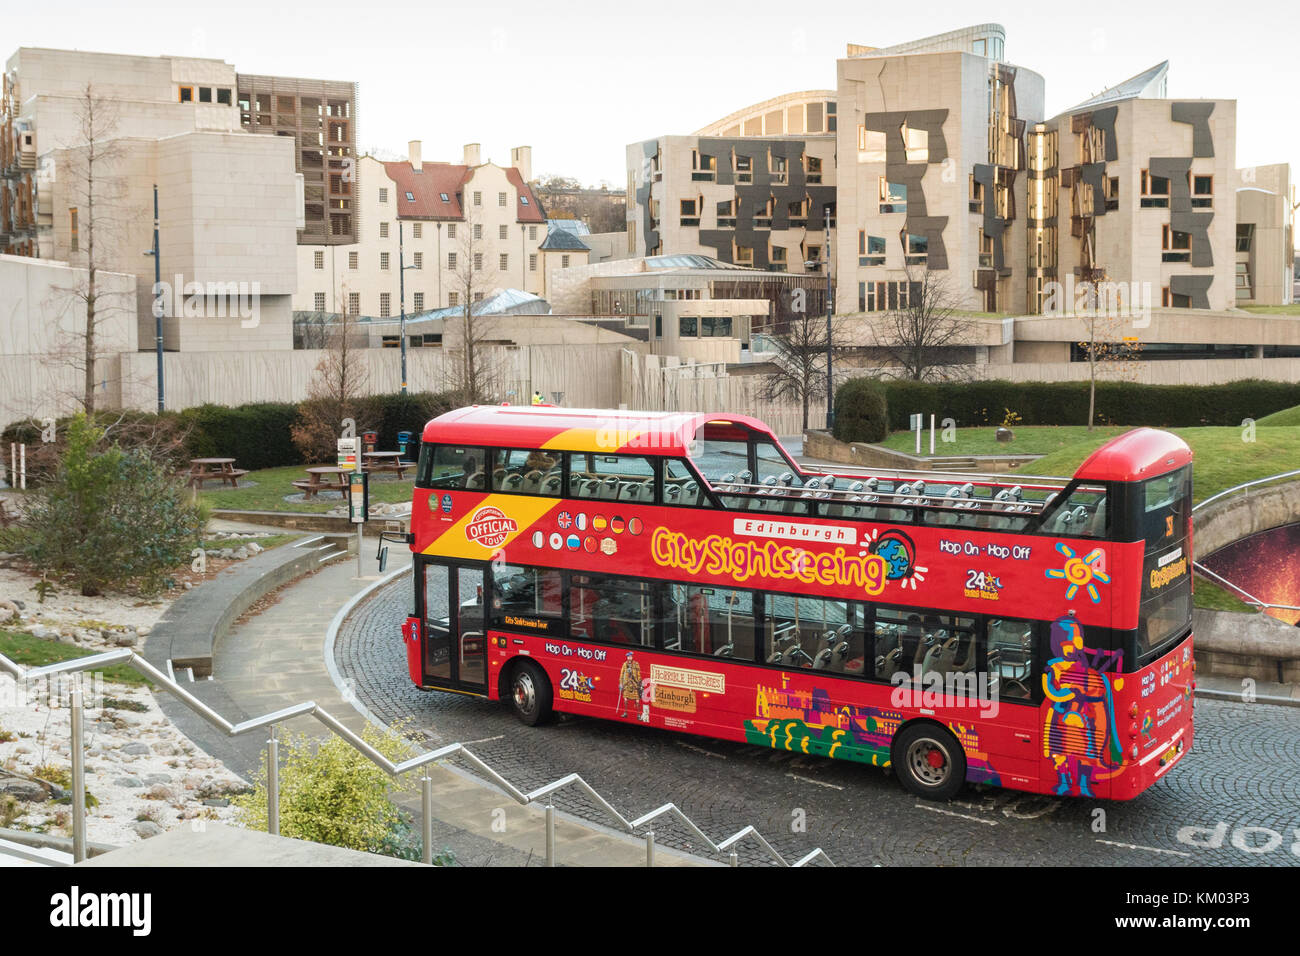 Edinburgh City Sightseeing tourist bus and Scottish Parliament Building, Edinburgh, Scotland, UK Stock Photo